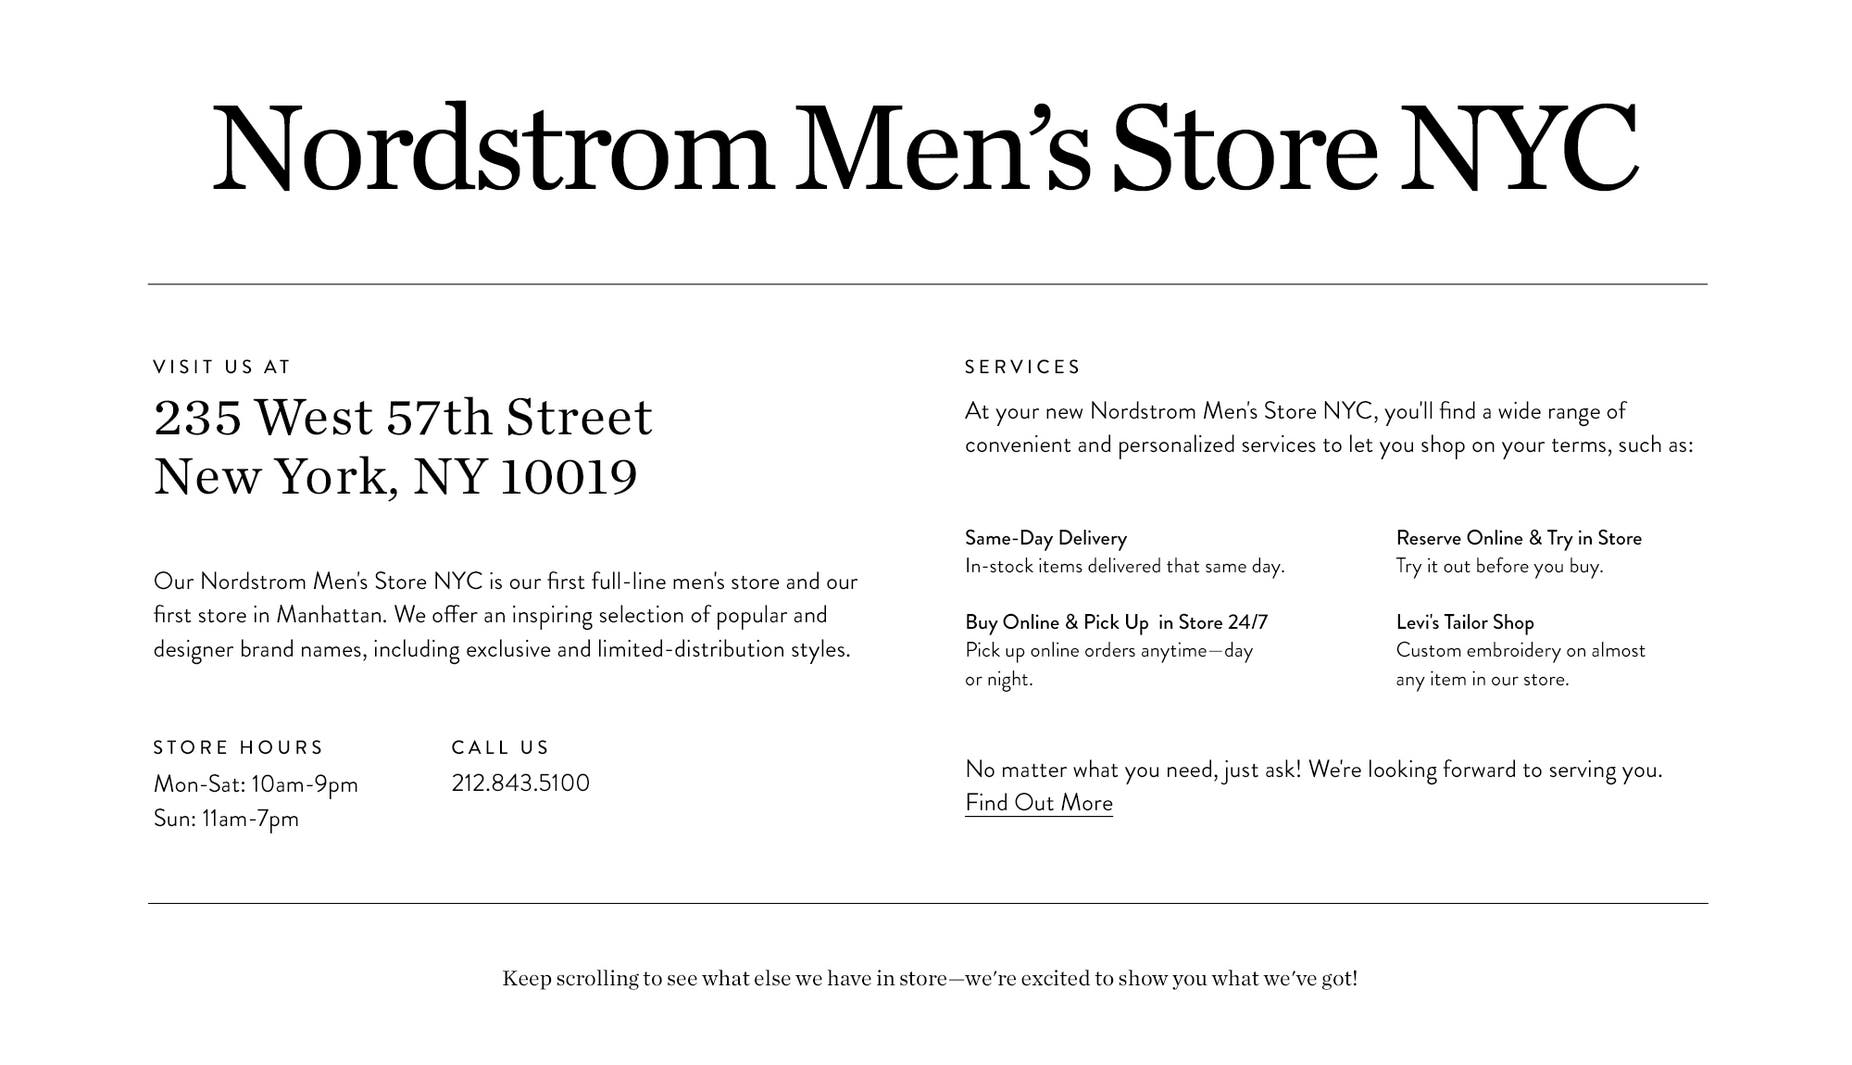 fc91e3bcb9306 Our Nordstrom Men s Store NYC is our first full-line men s store and our  first